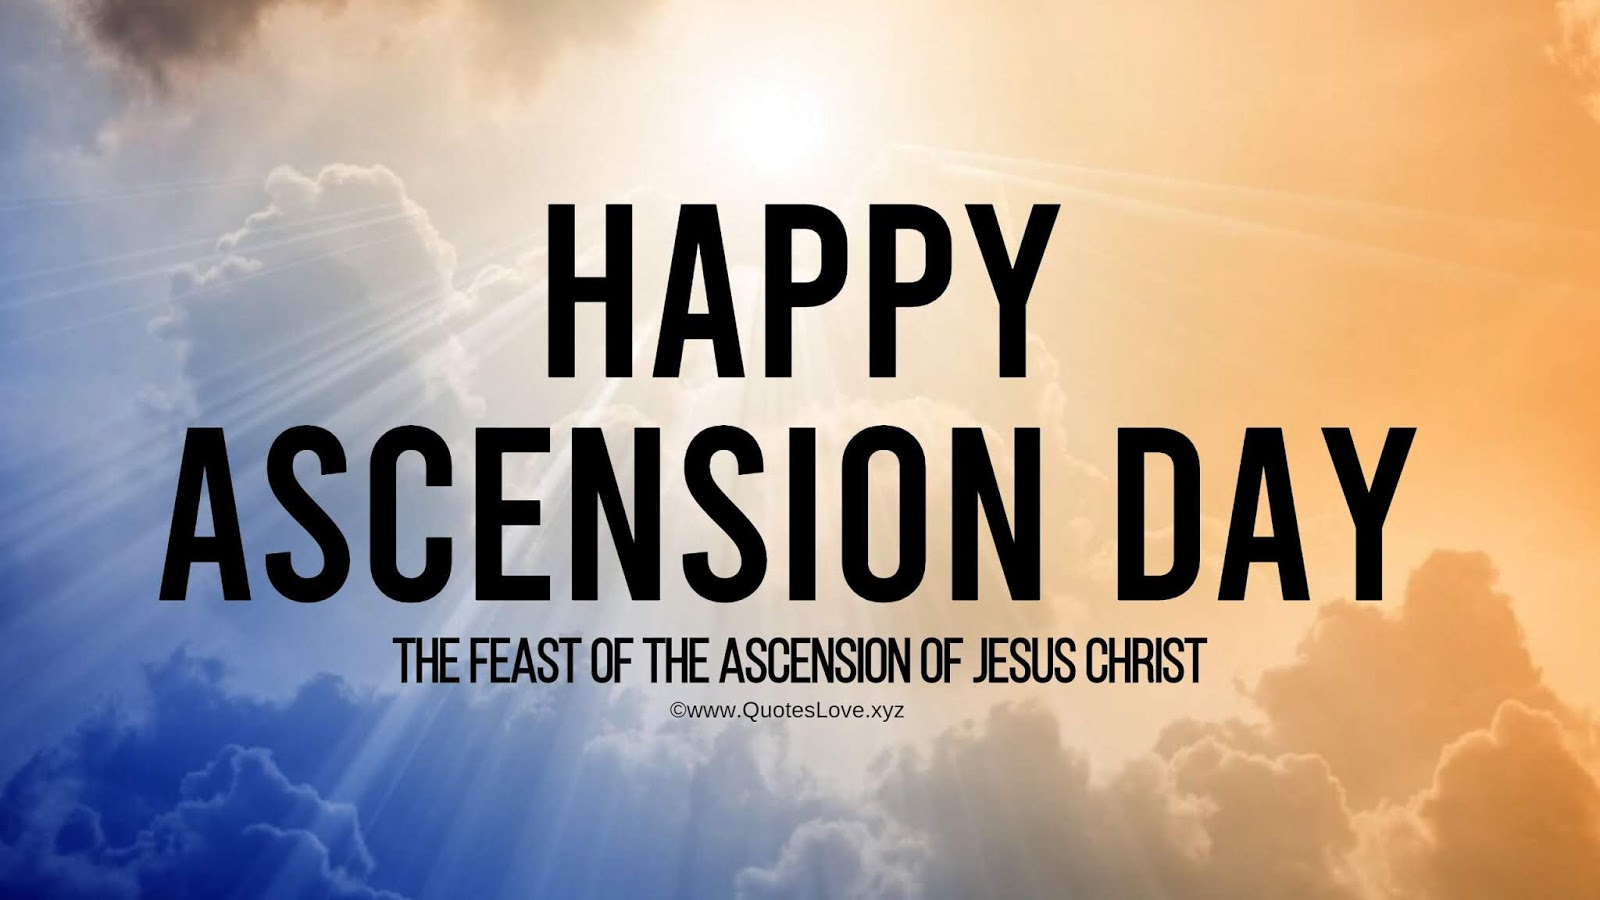 Happy Ascension Day Wishes, Quotes, Greetings, Messages, Meaning, Images, Pictures, Photos